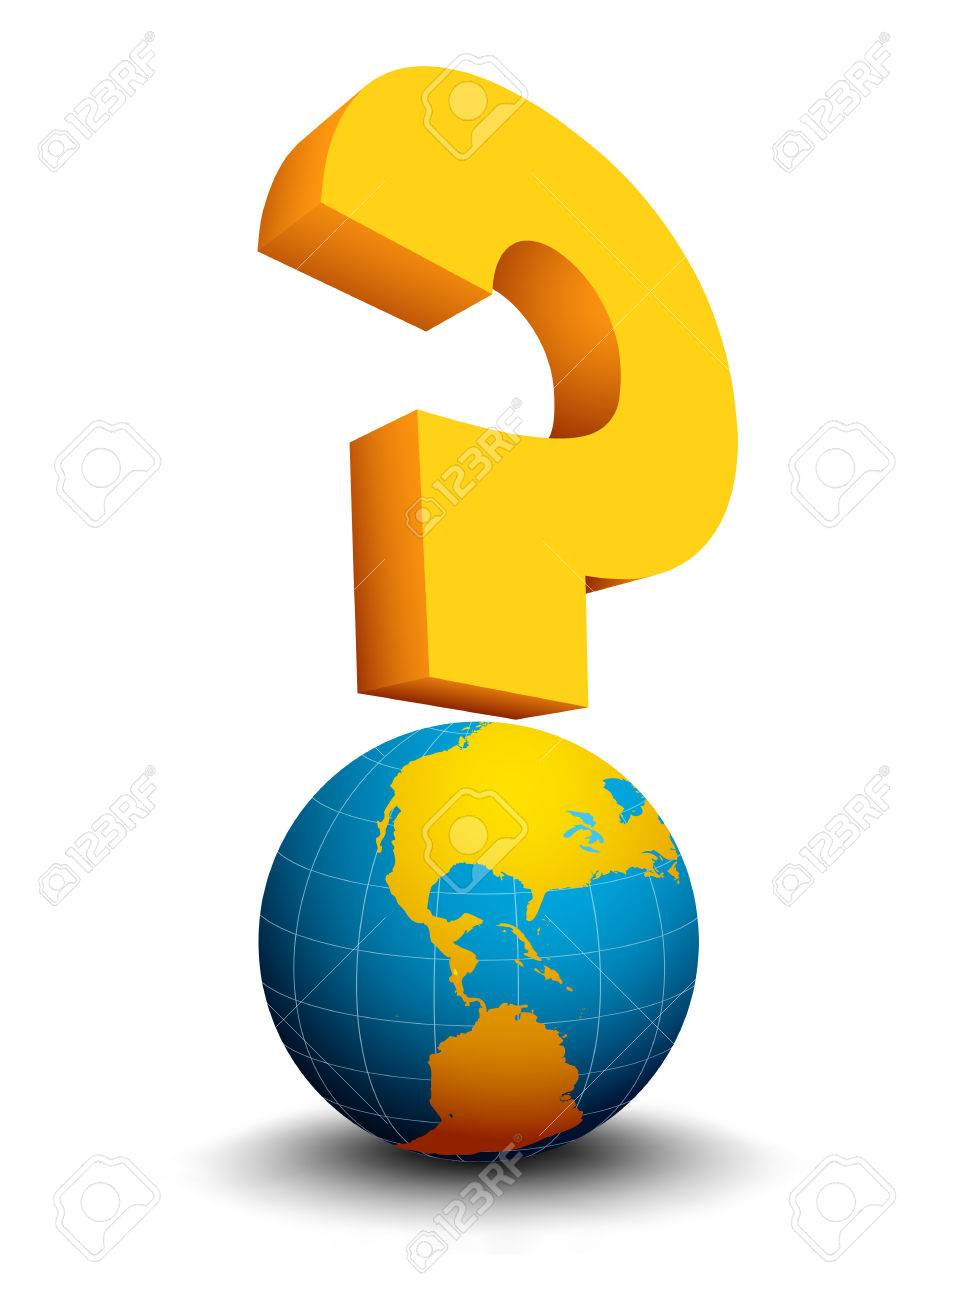 Abstract concept with globe and question mark. It can be used for different global problems, questions, processes, such as global warming, financial crisis etc. Colors are fully editable. Stock Vector - 26341489